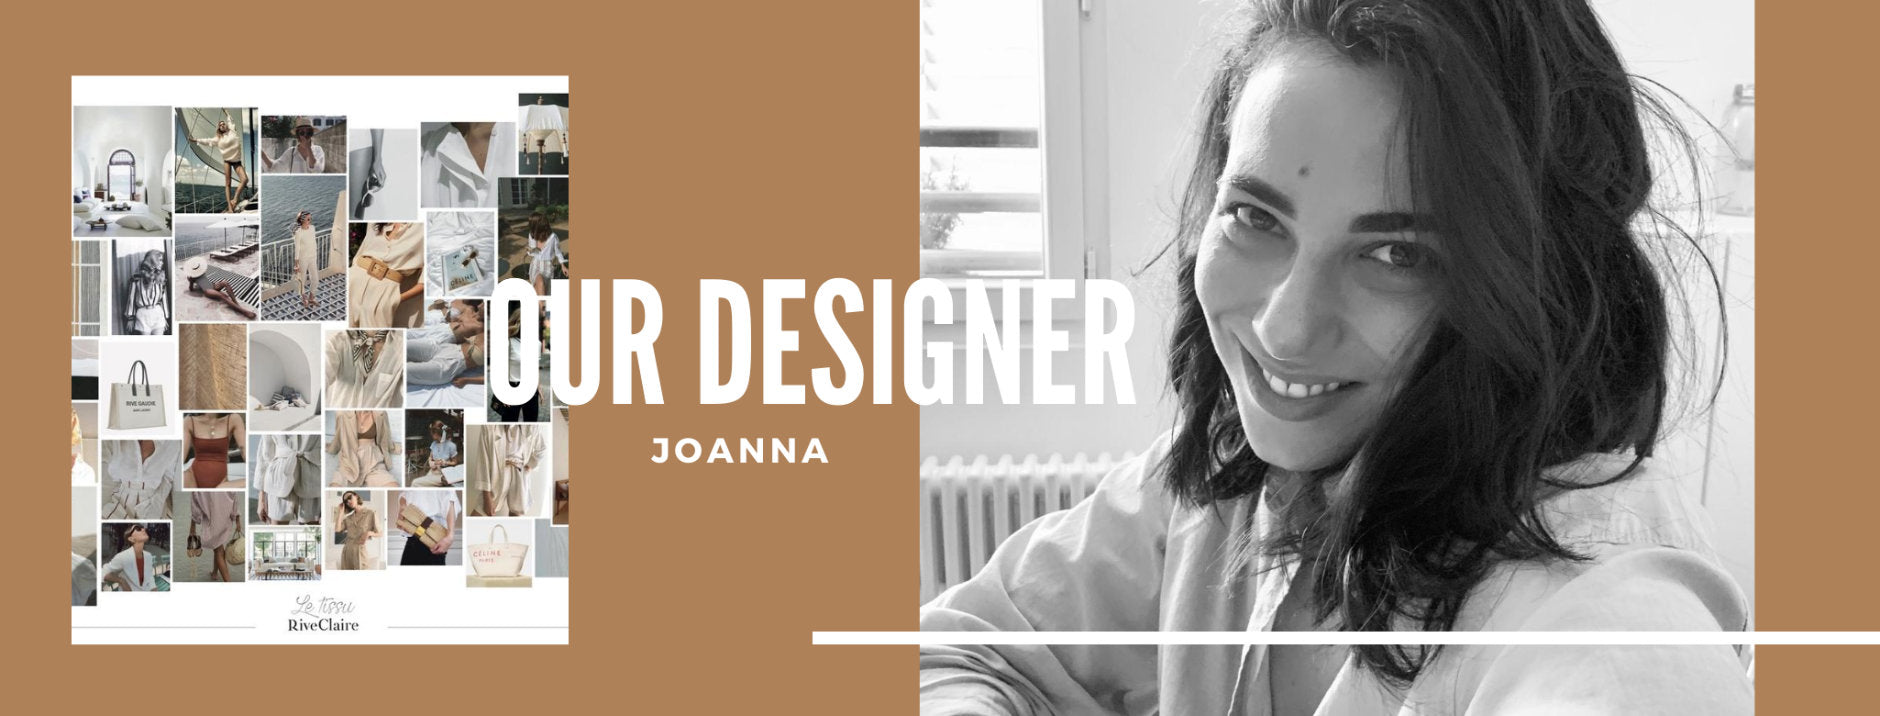 Joanna, our designer